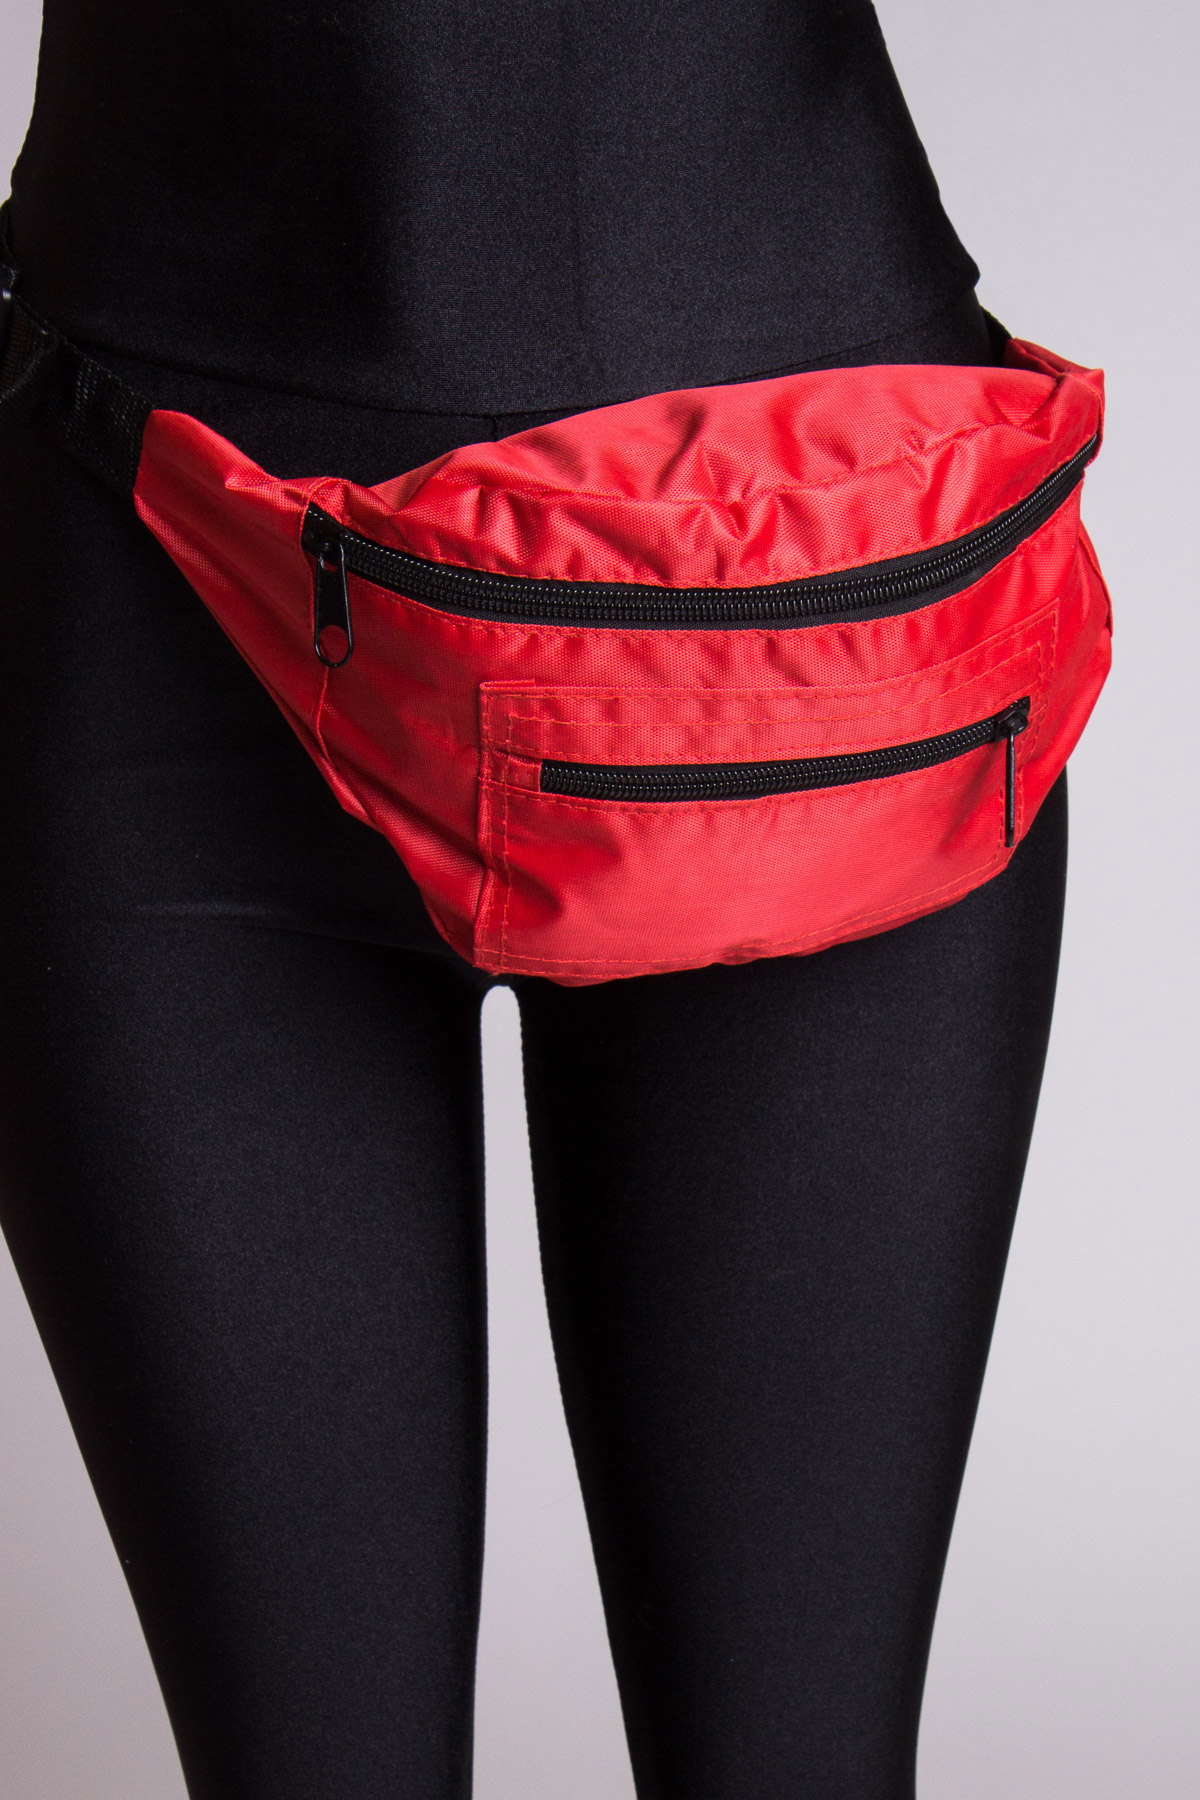 4c78653305536 You're viewing: Red Solid Fanny Pack $9.99